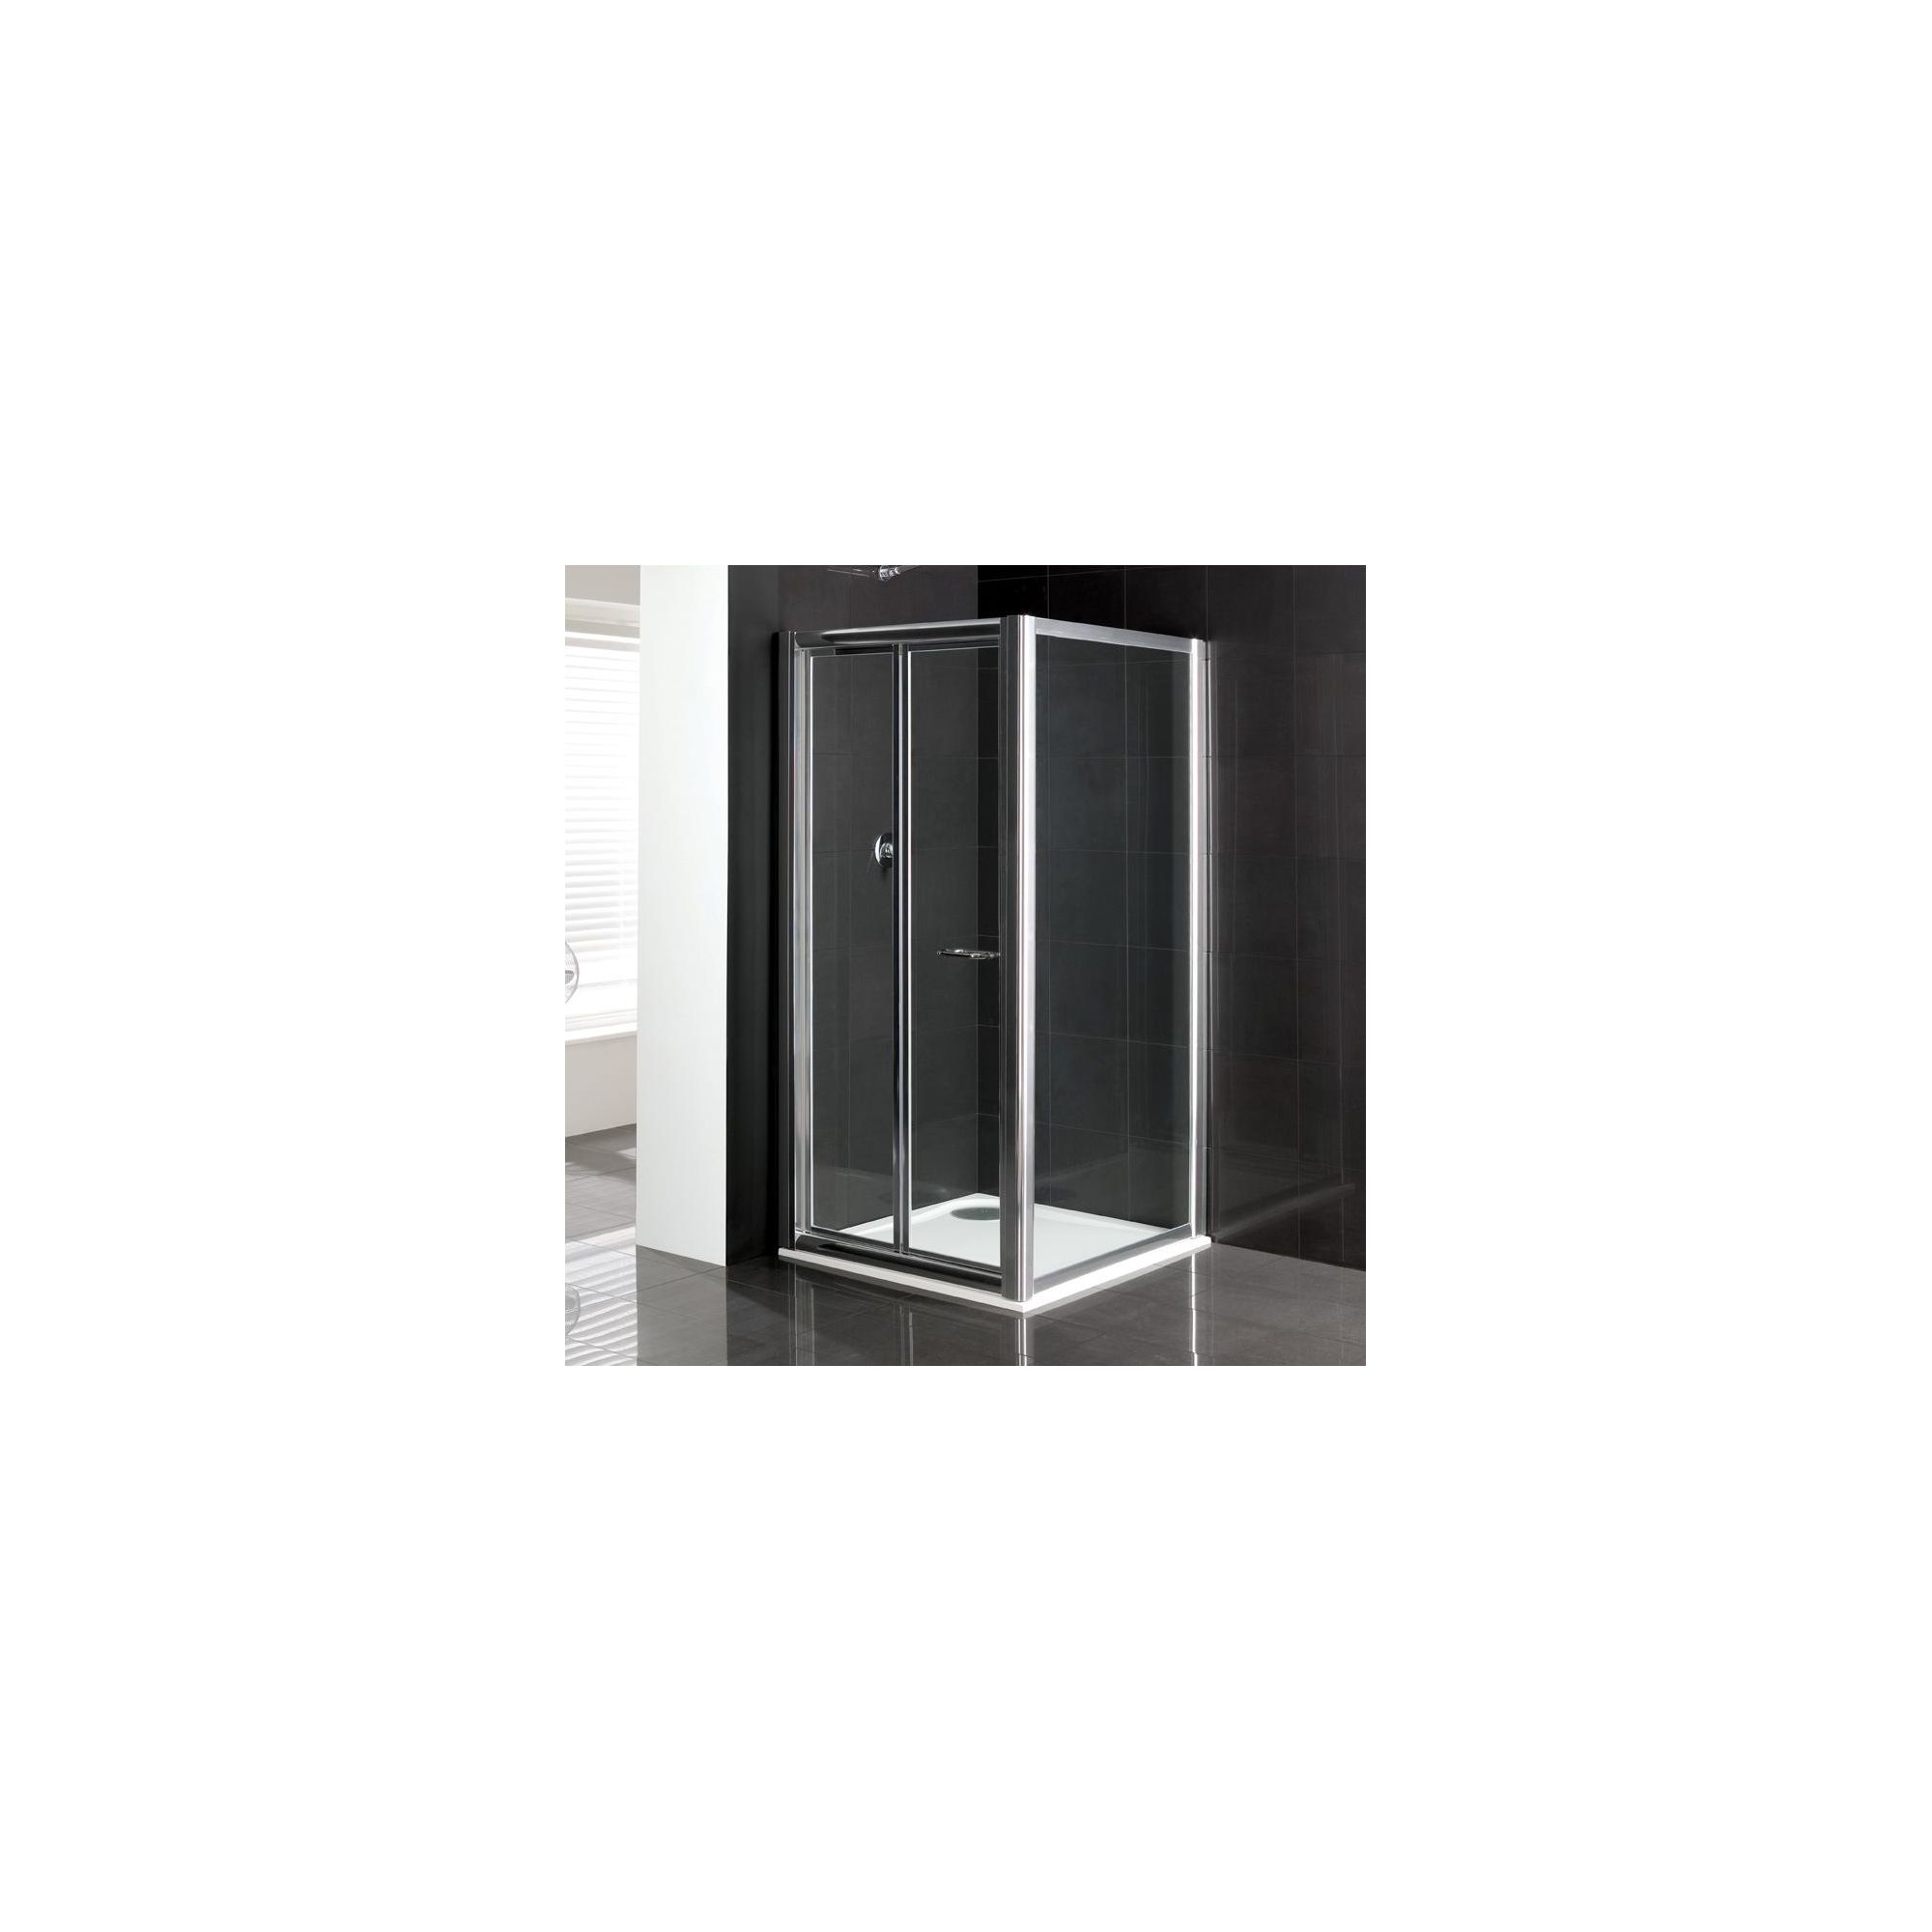 Duchy Elite Silver Bi-Fold Door Shower Enclosure, 1000mm x 1000mm, Standard Tray, 6mm Glass at Tesco Direct